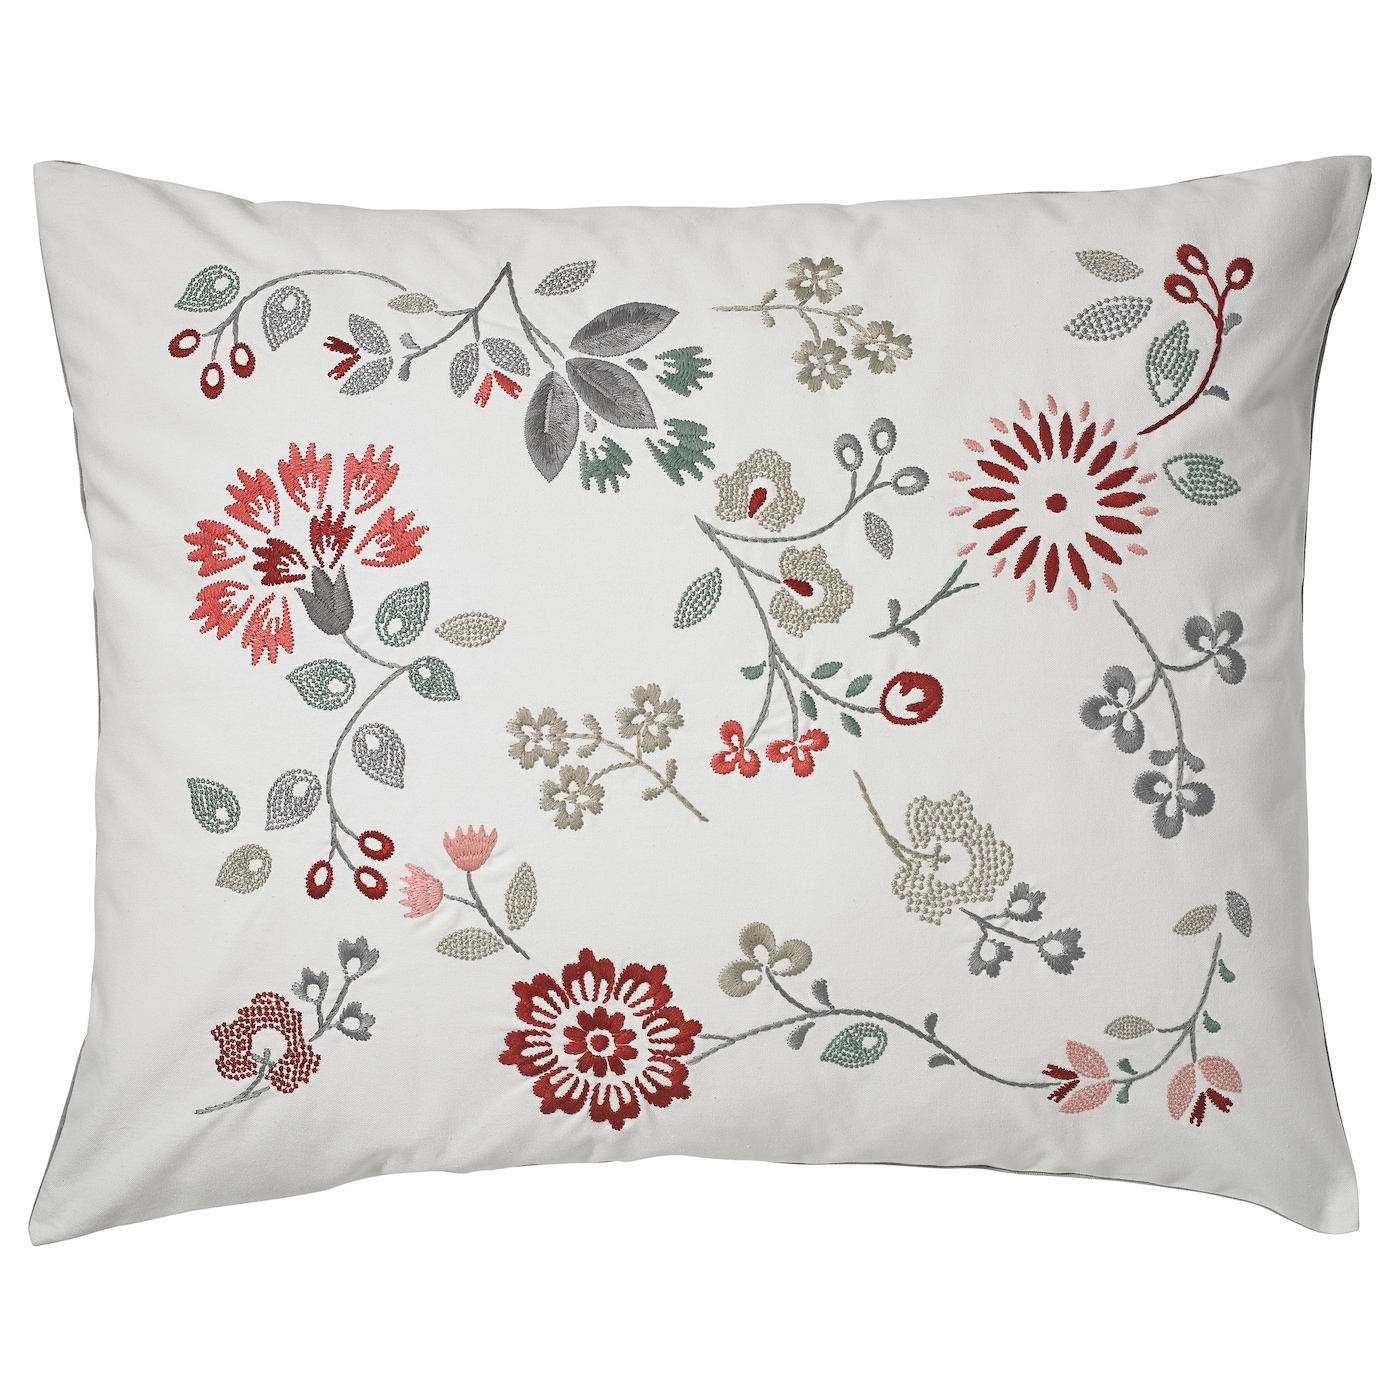 IKEA HEDBLOMSTER cushion Embroidery adds texture and lustre to the cushion.